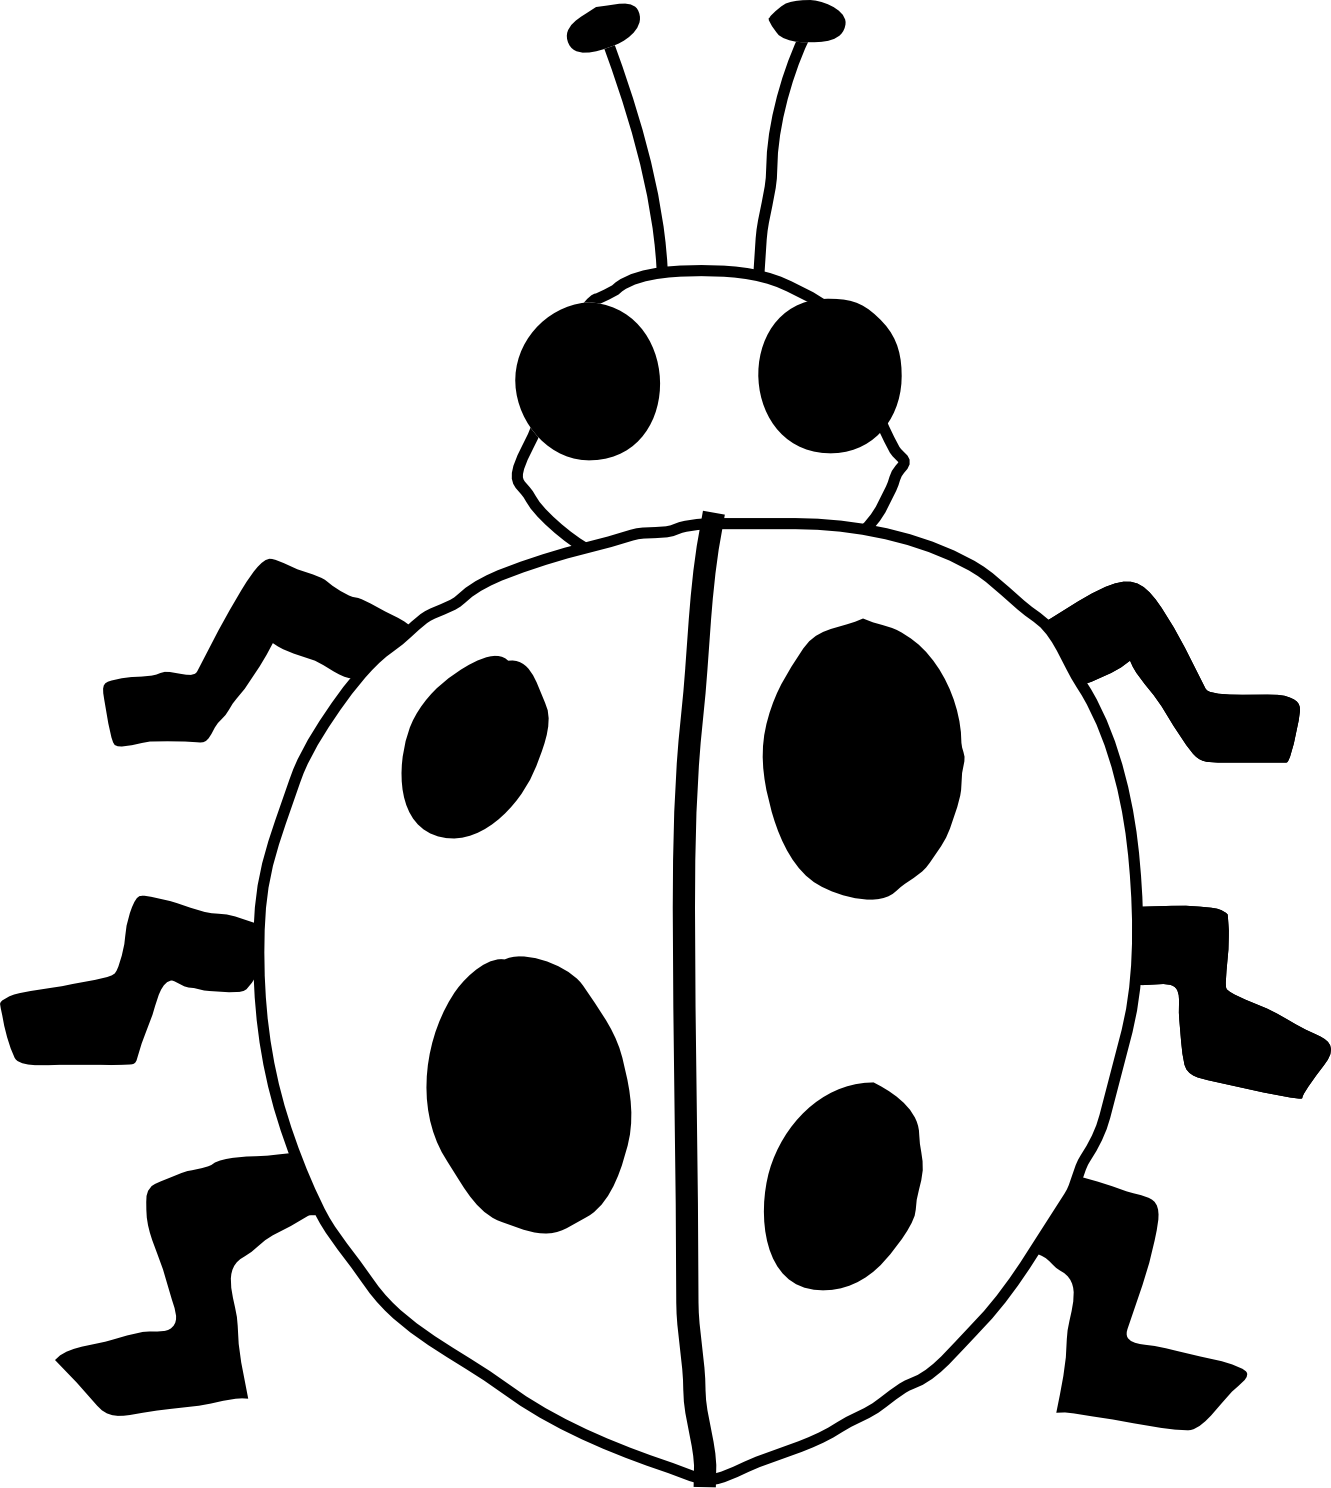 Ladybug 21 Black White Line Art Flower Scalable Vector Graphics Svg